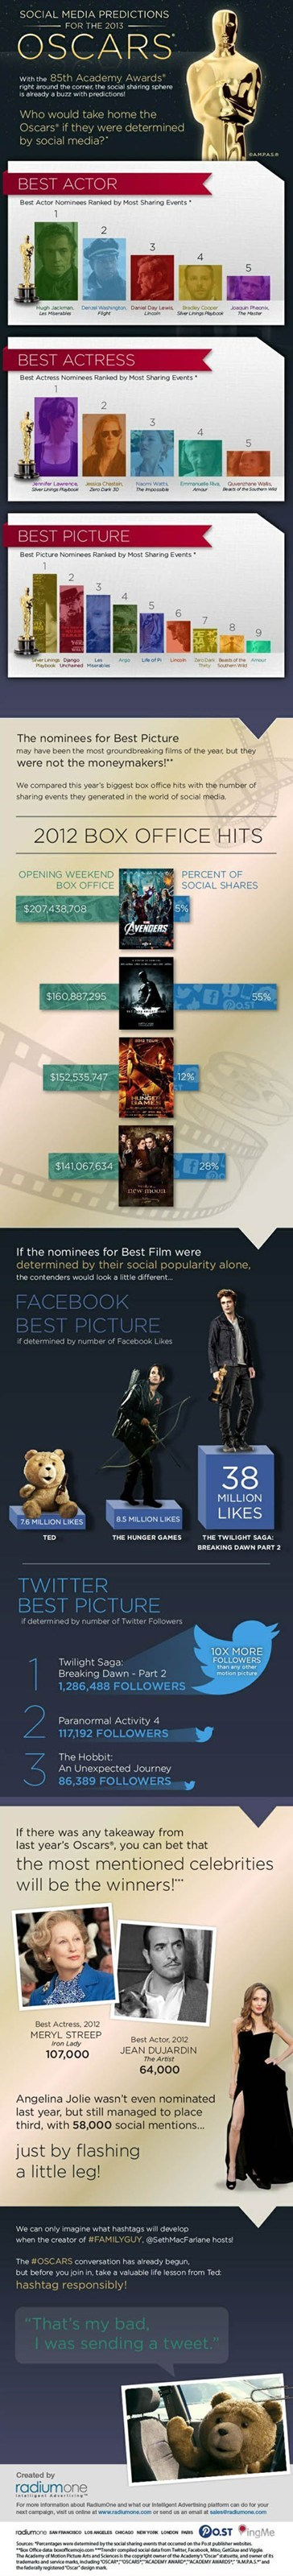 What if Social Media Presence Determined Who Won an Oscar?